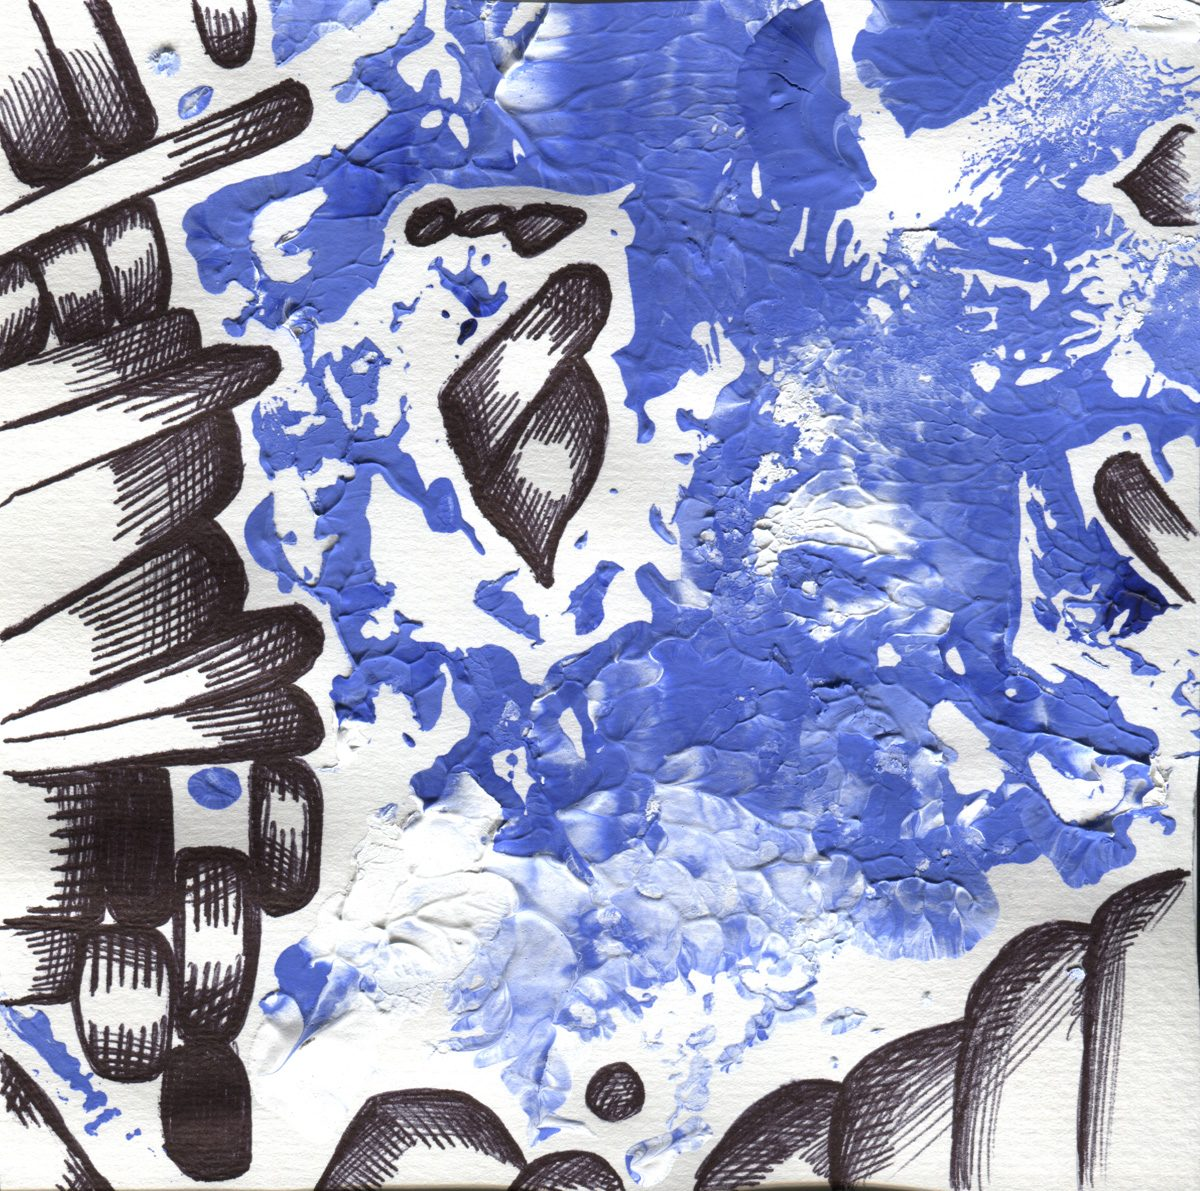 The image shows a piece of artwork by Jina Wallwork. It is a paint and ink drawing of abstract subject matter. Stylistically this piece of artwork has links with abstract art.